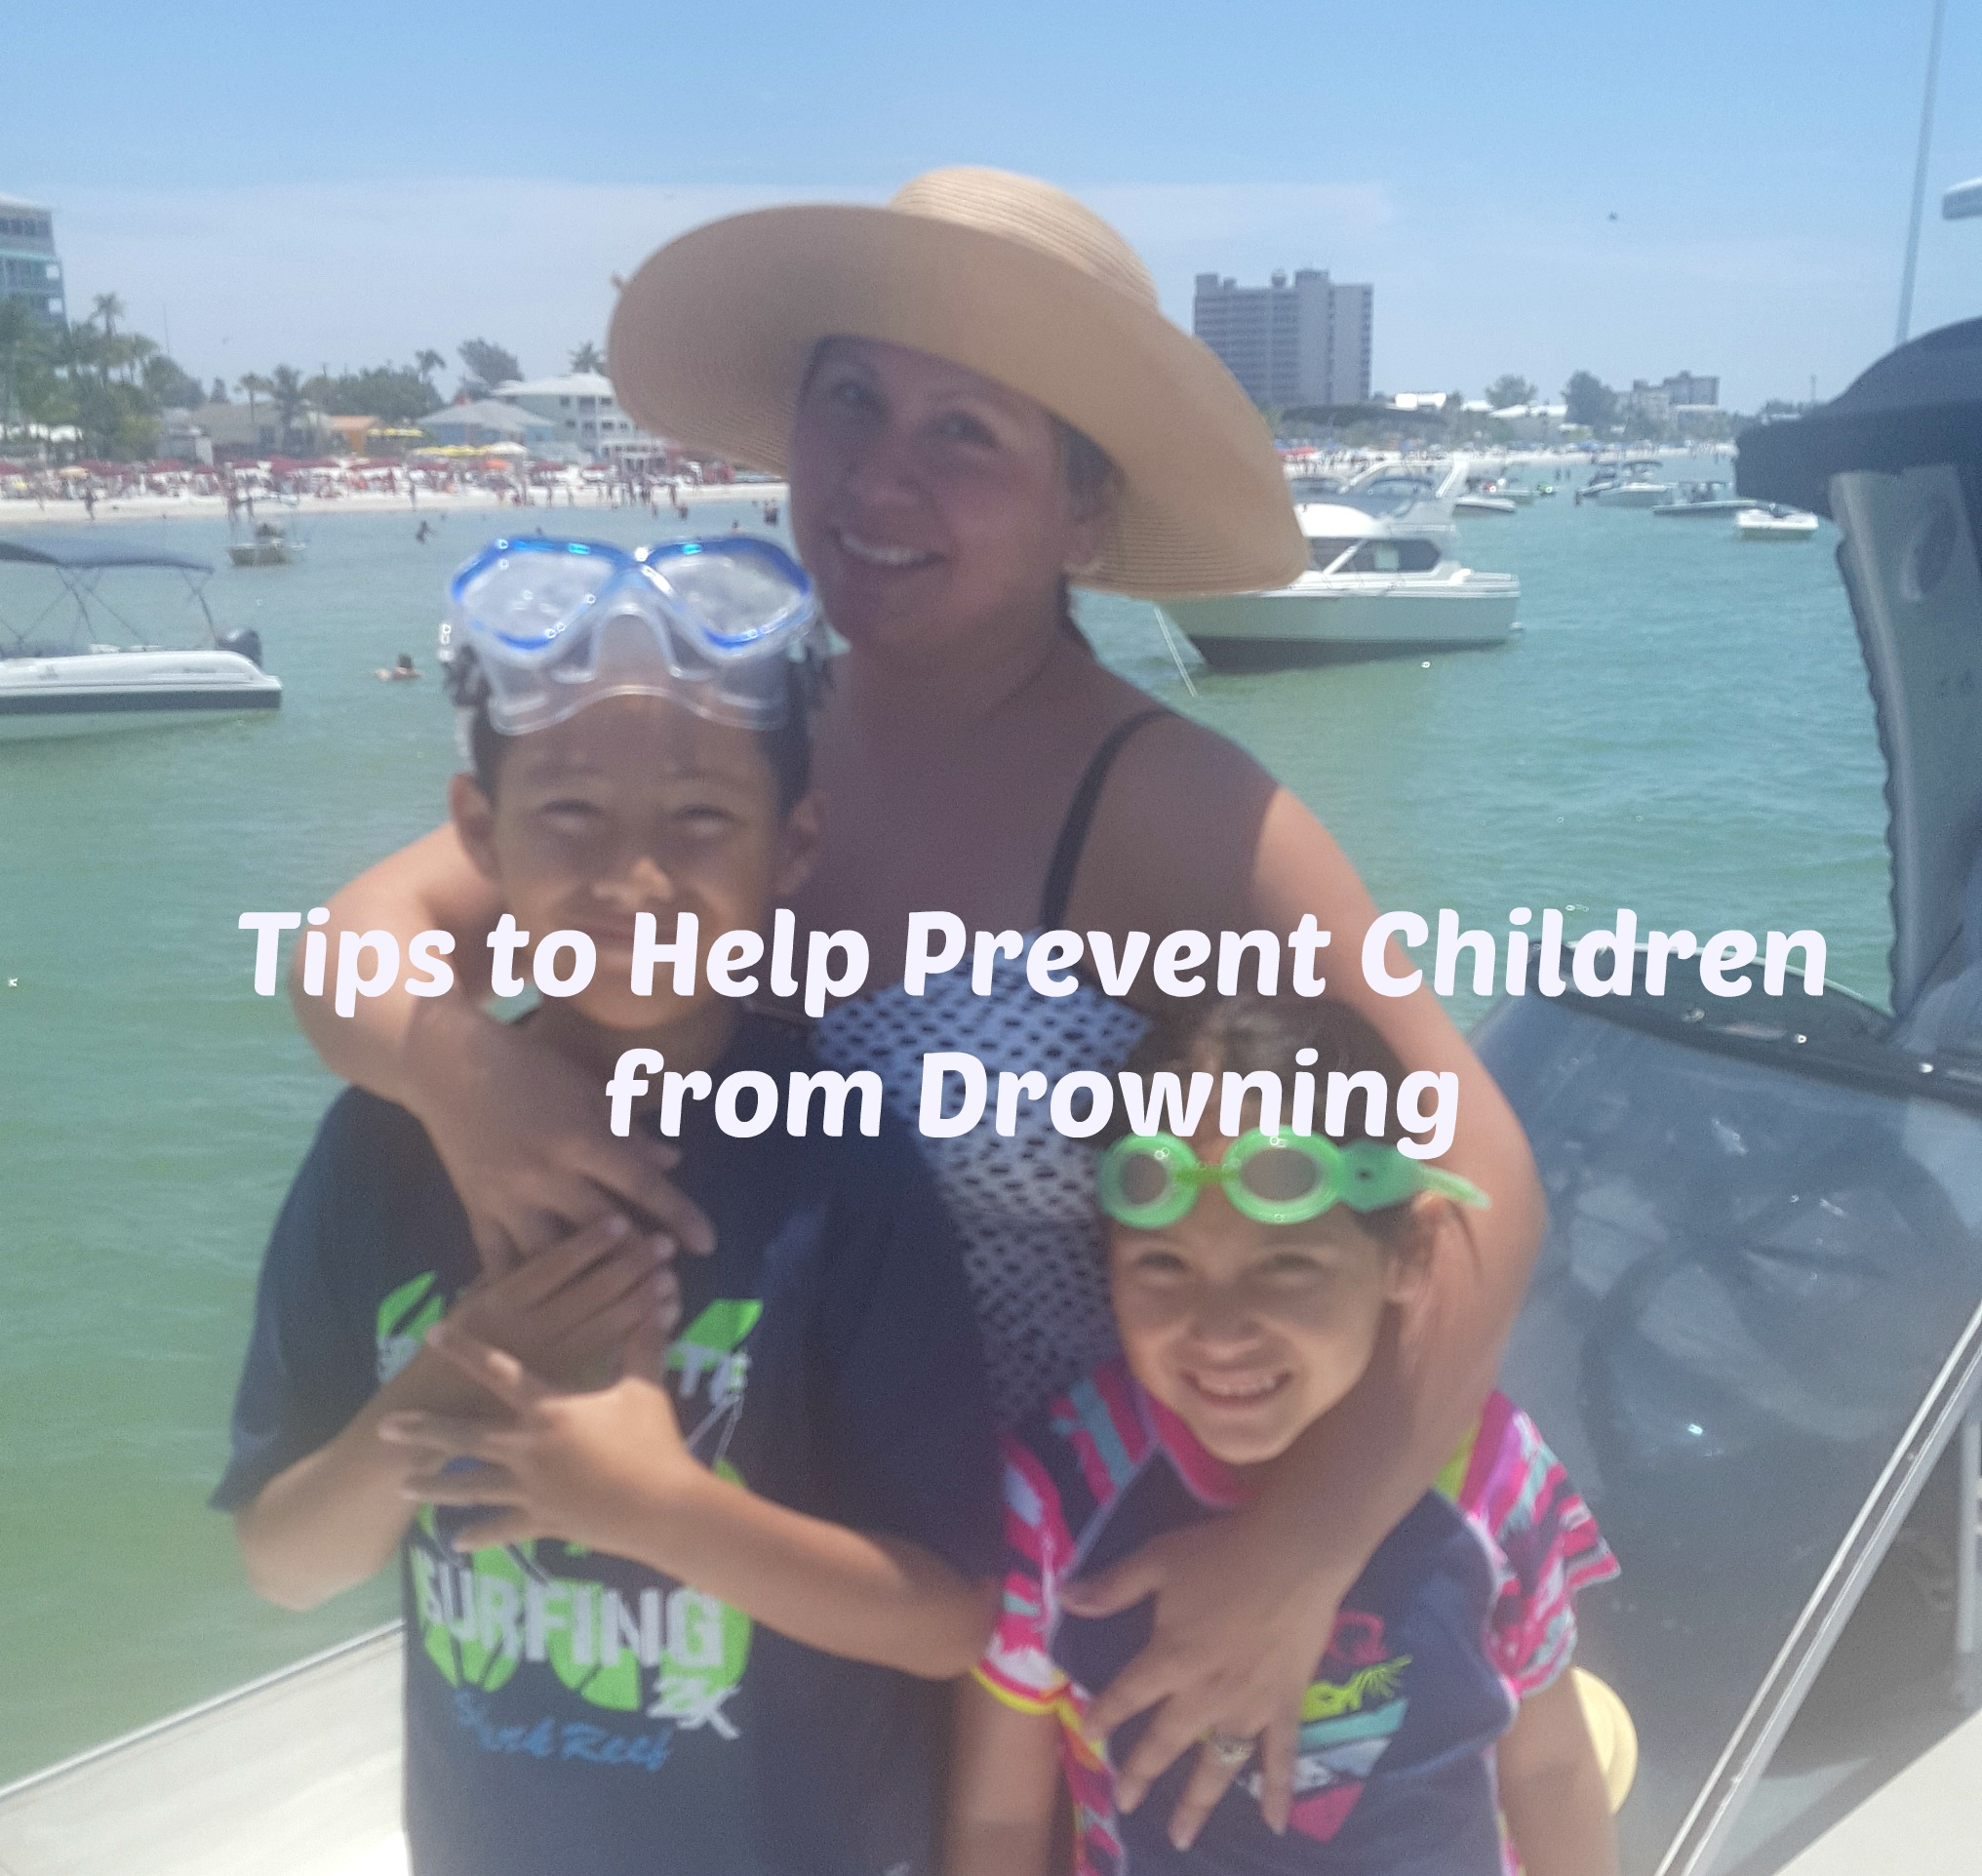 Tips to Help Prevent Children from Drowning